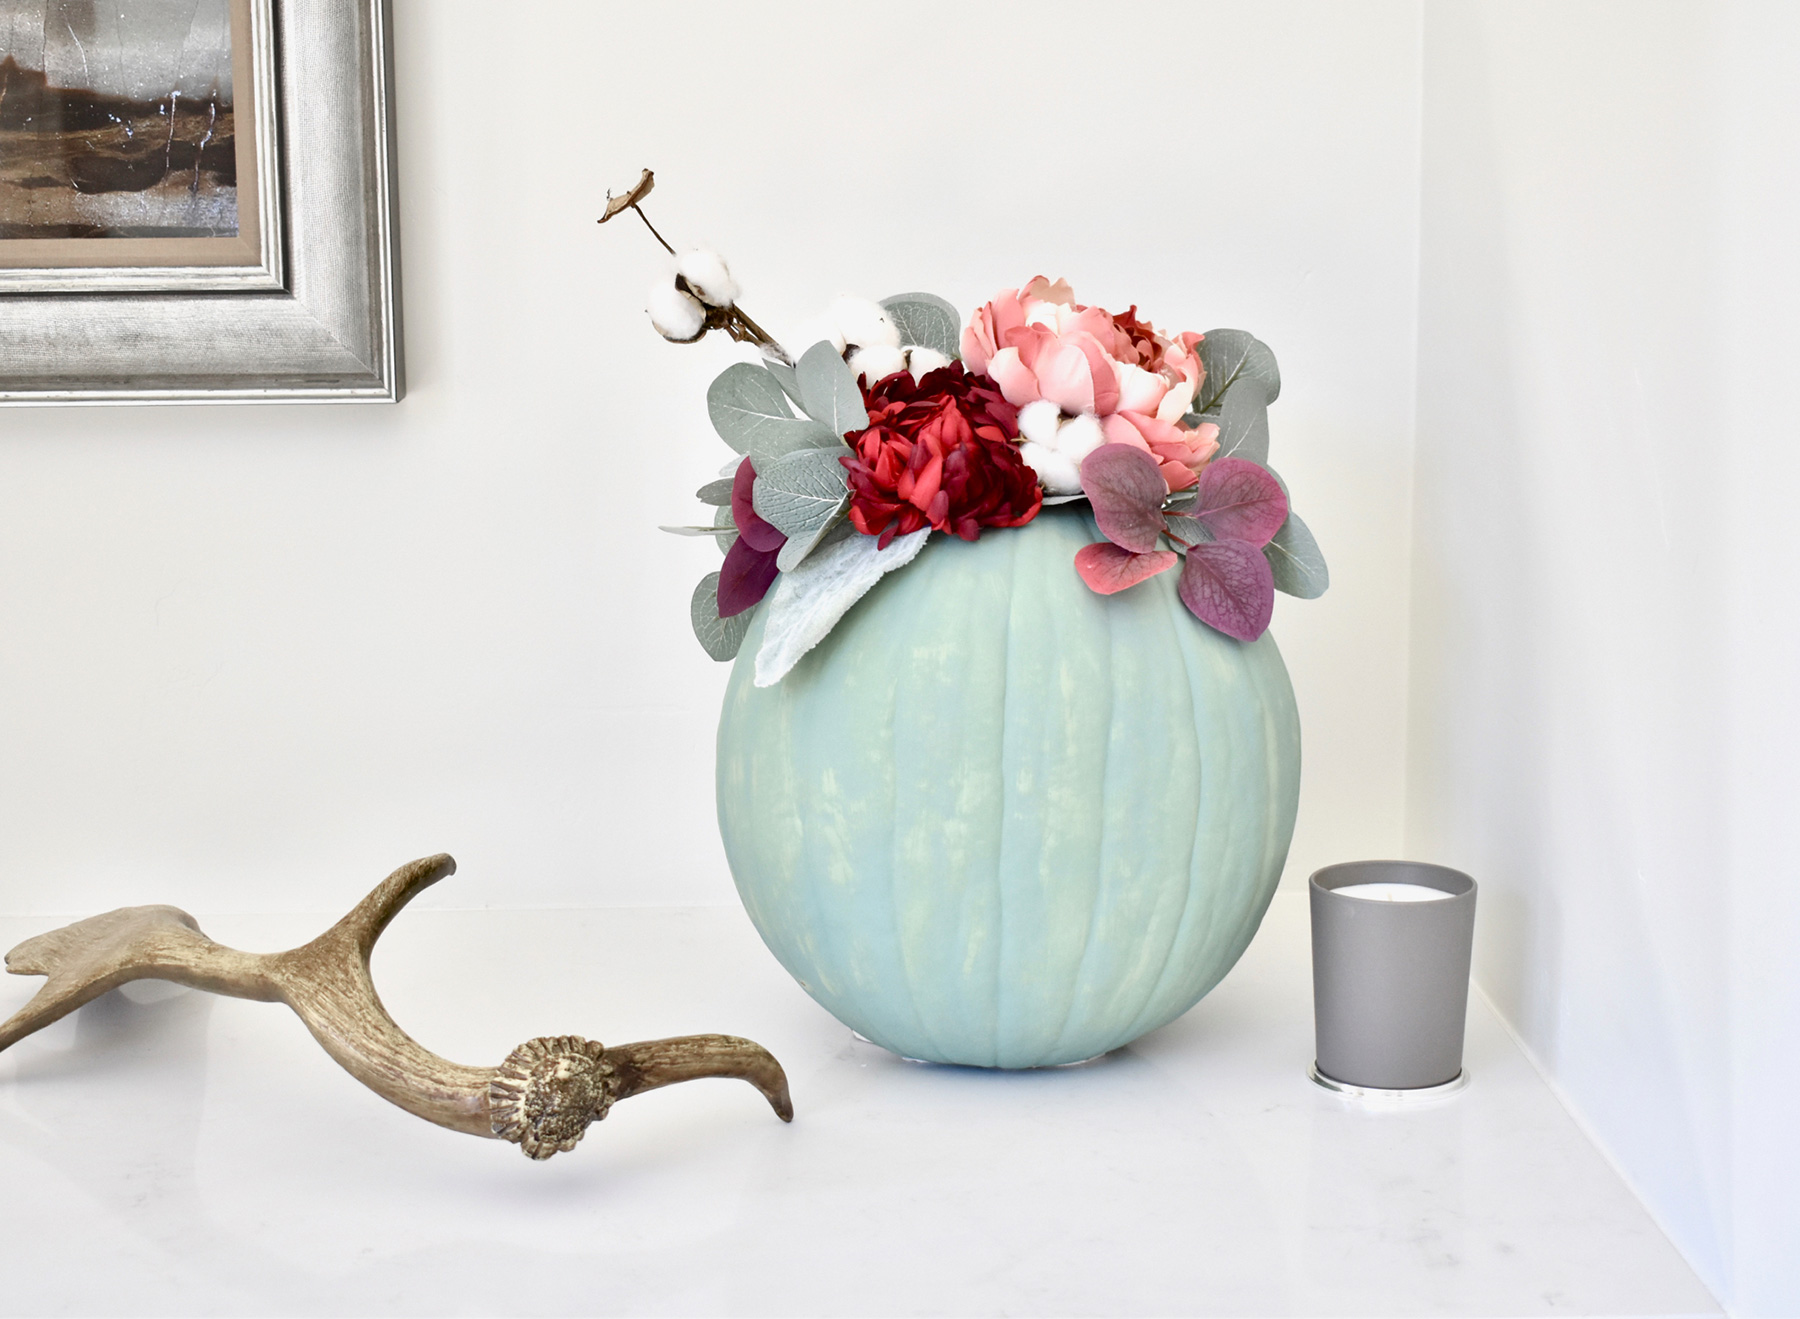 No carve pumpkin ideas - Flower Centerpiece Pumpkin